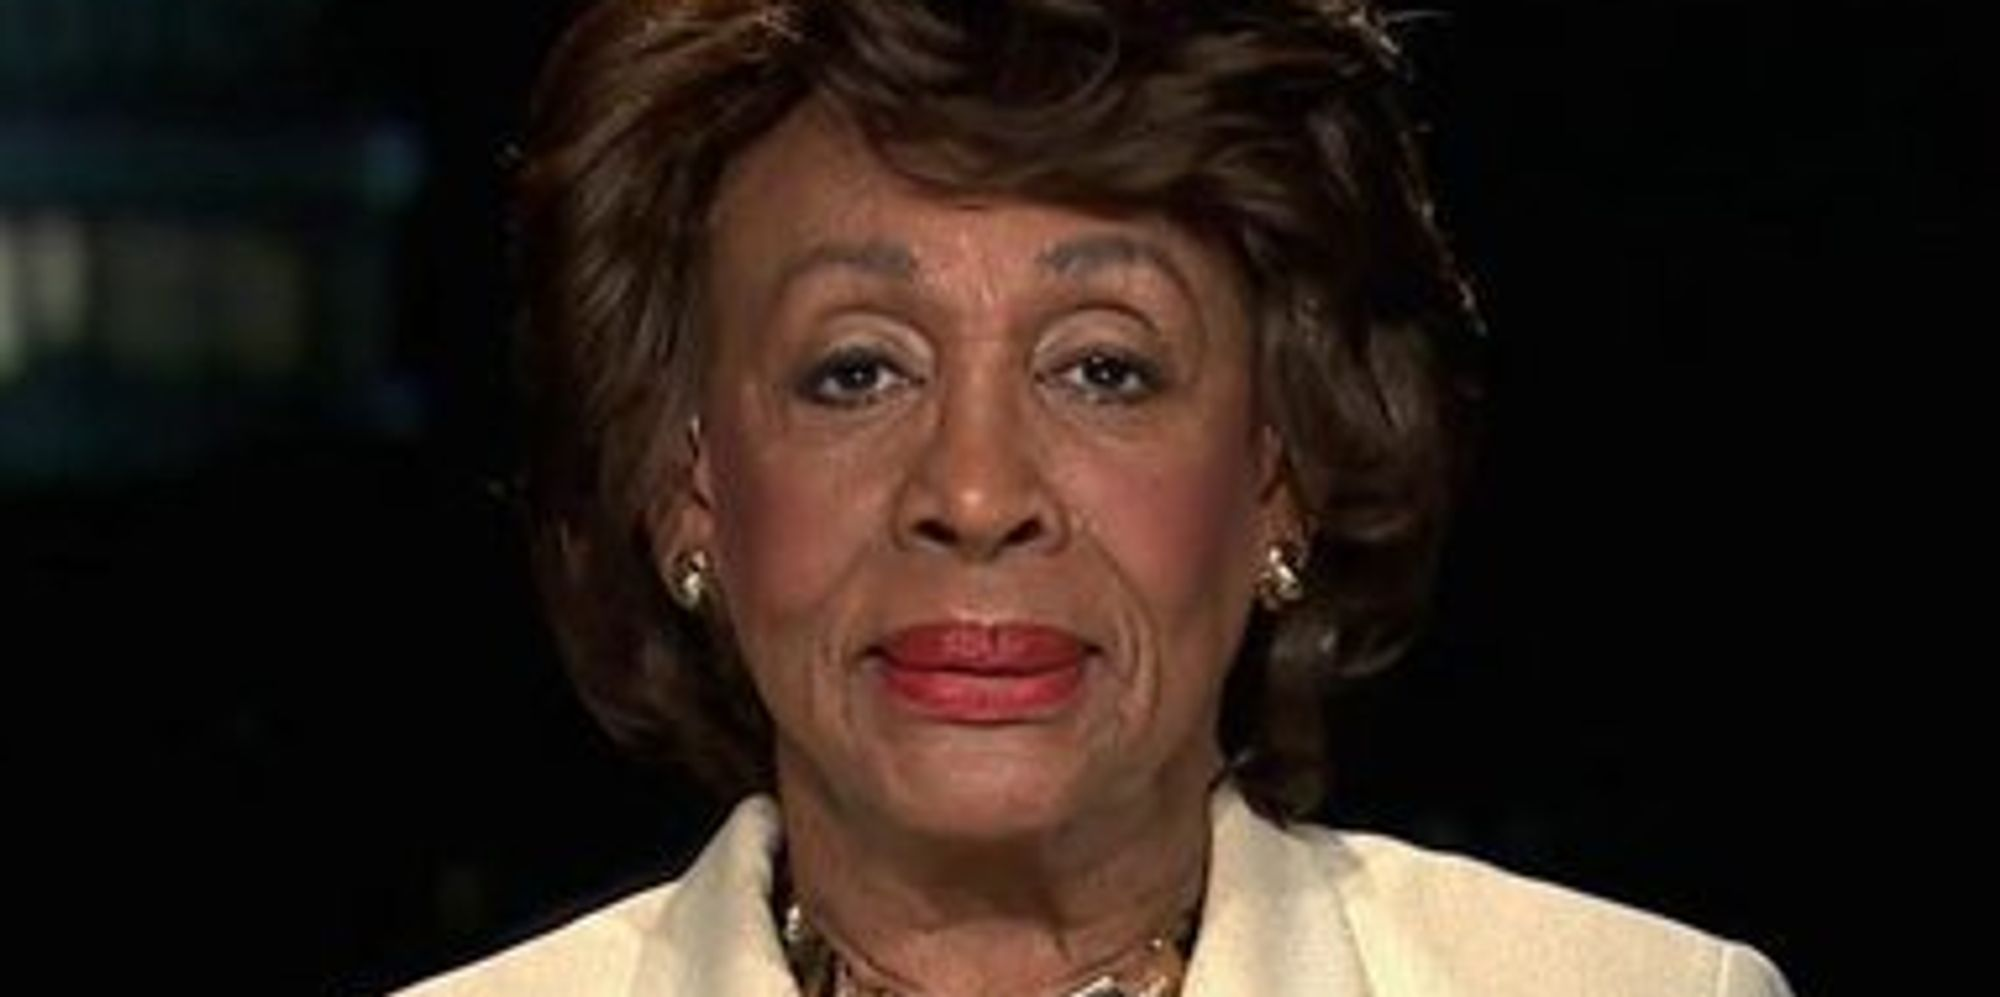 Maxine Waters To Bill O'Reilly: 'I'm A Strong Black Woman, And I Cannot Be Intimidated'